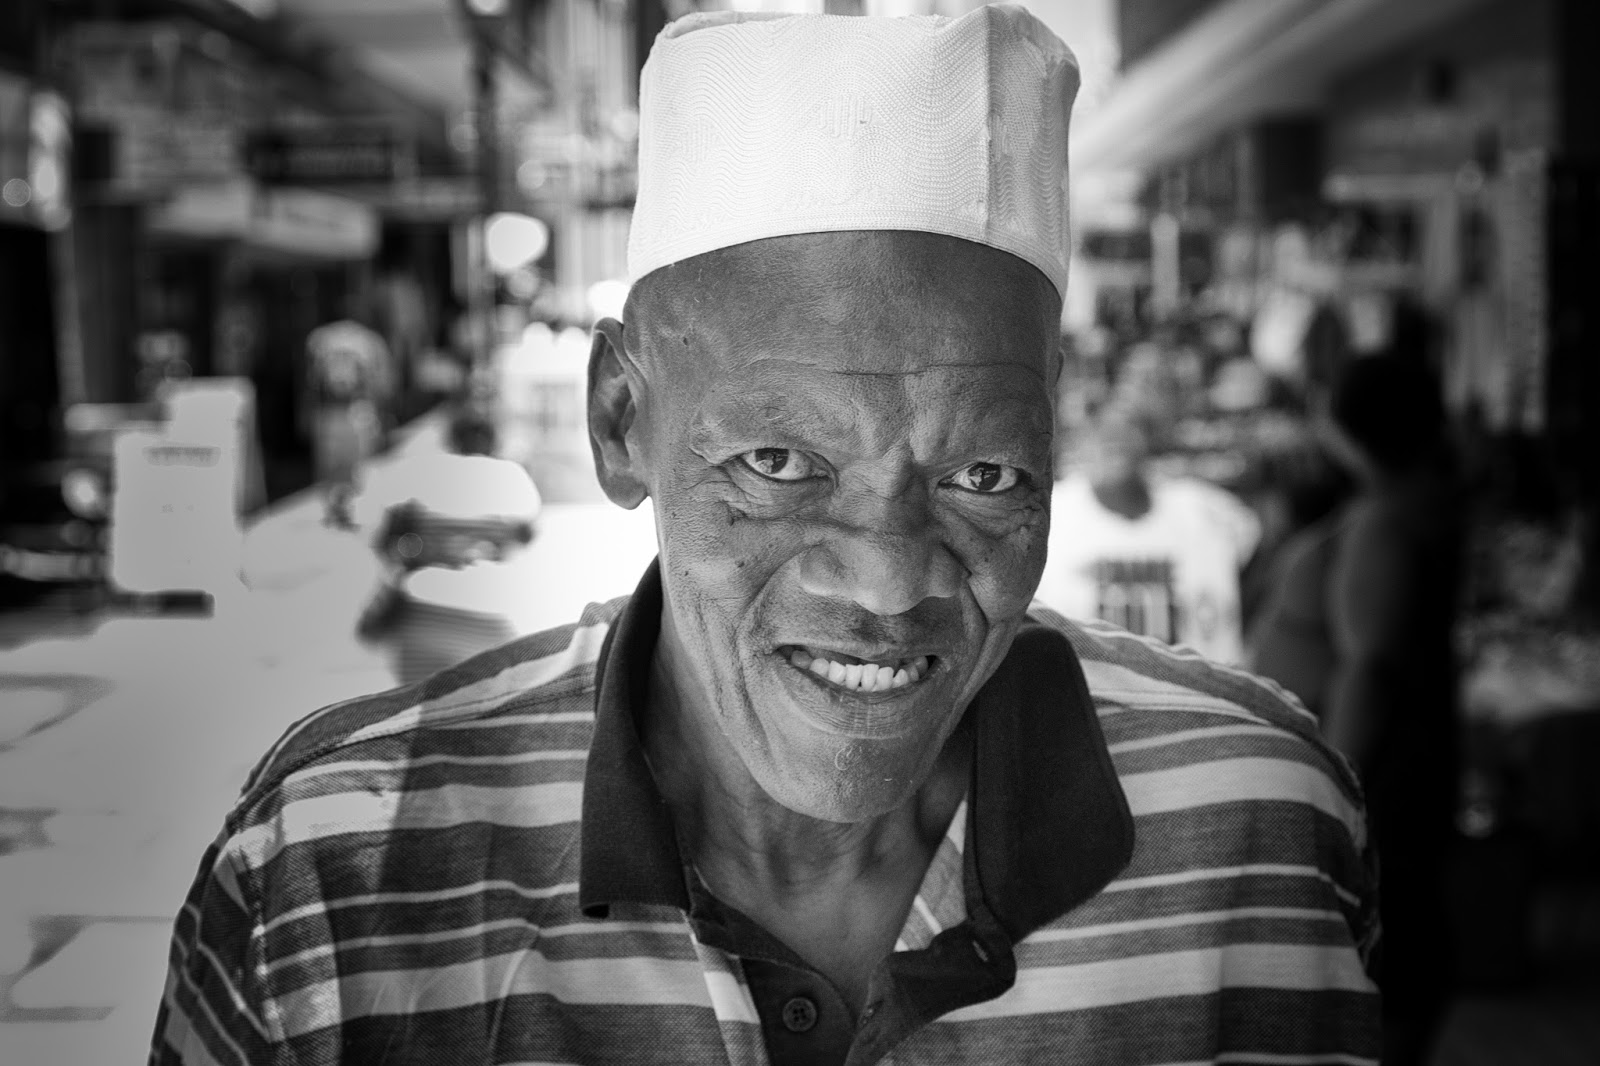 A street portrait of a fruit vendor on Annerley street Cape Town.